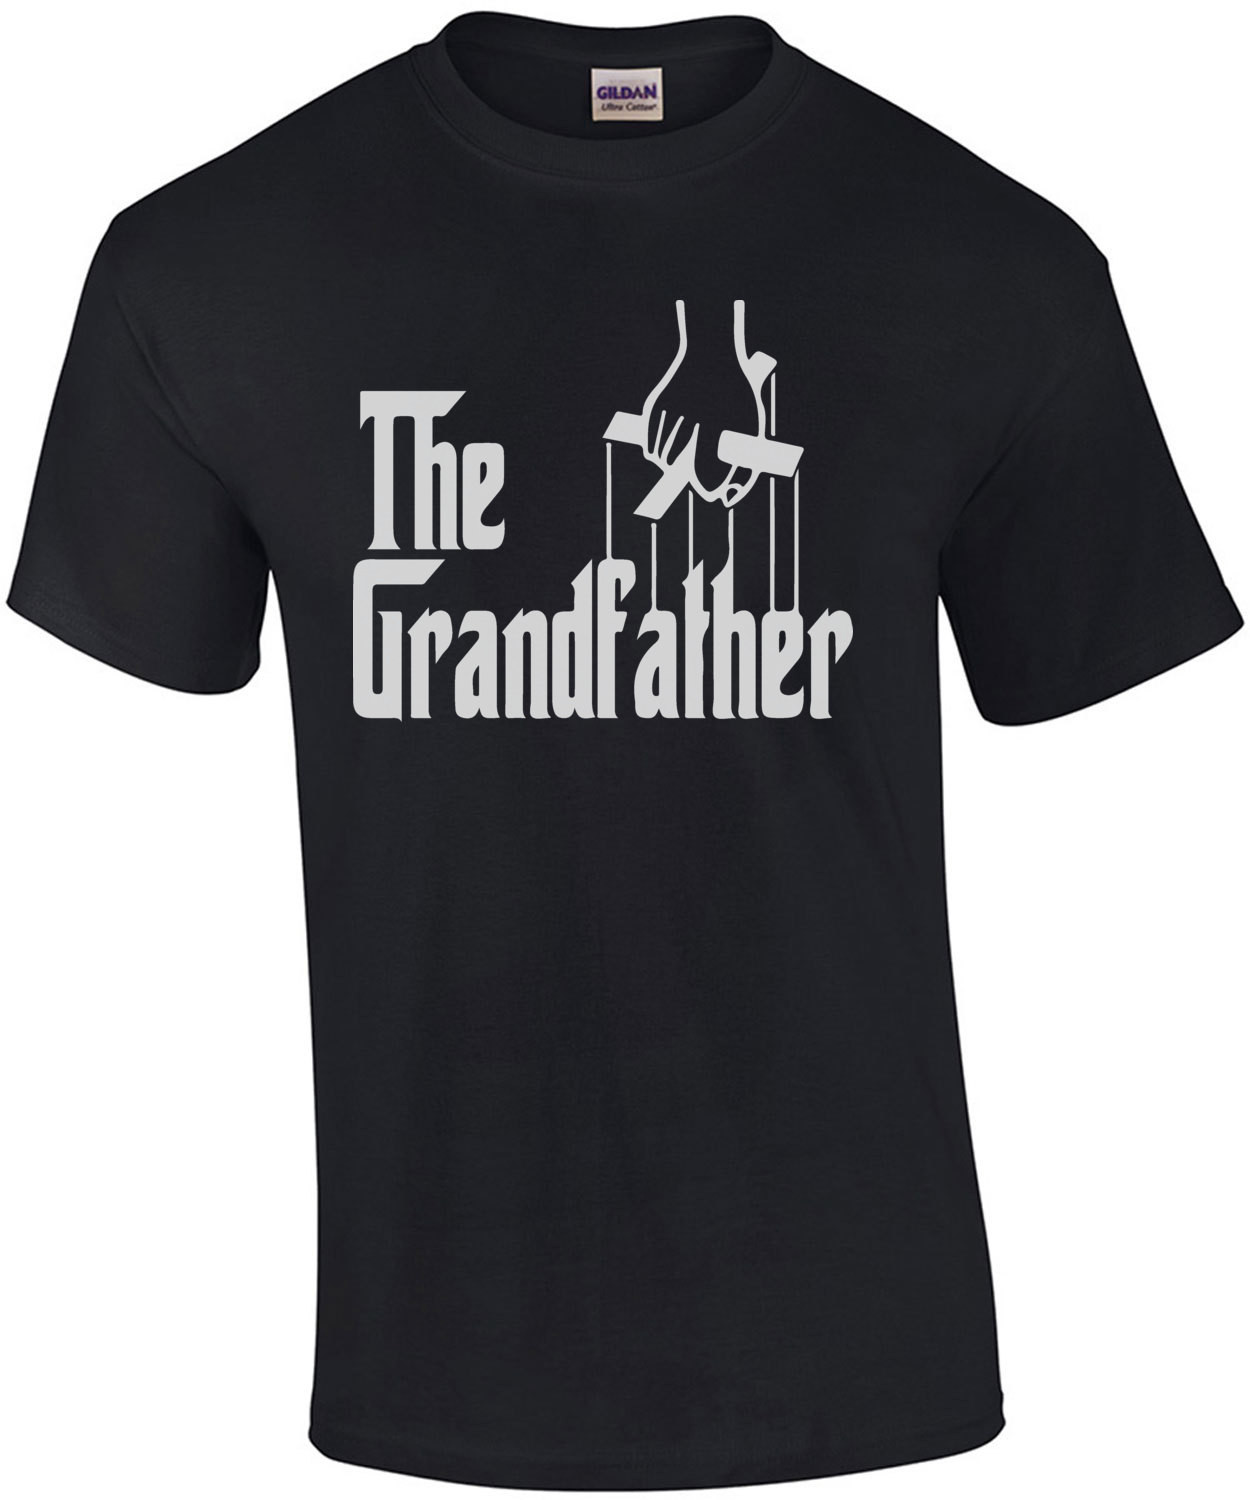 The Grandfather - T-Shirt shirt